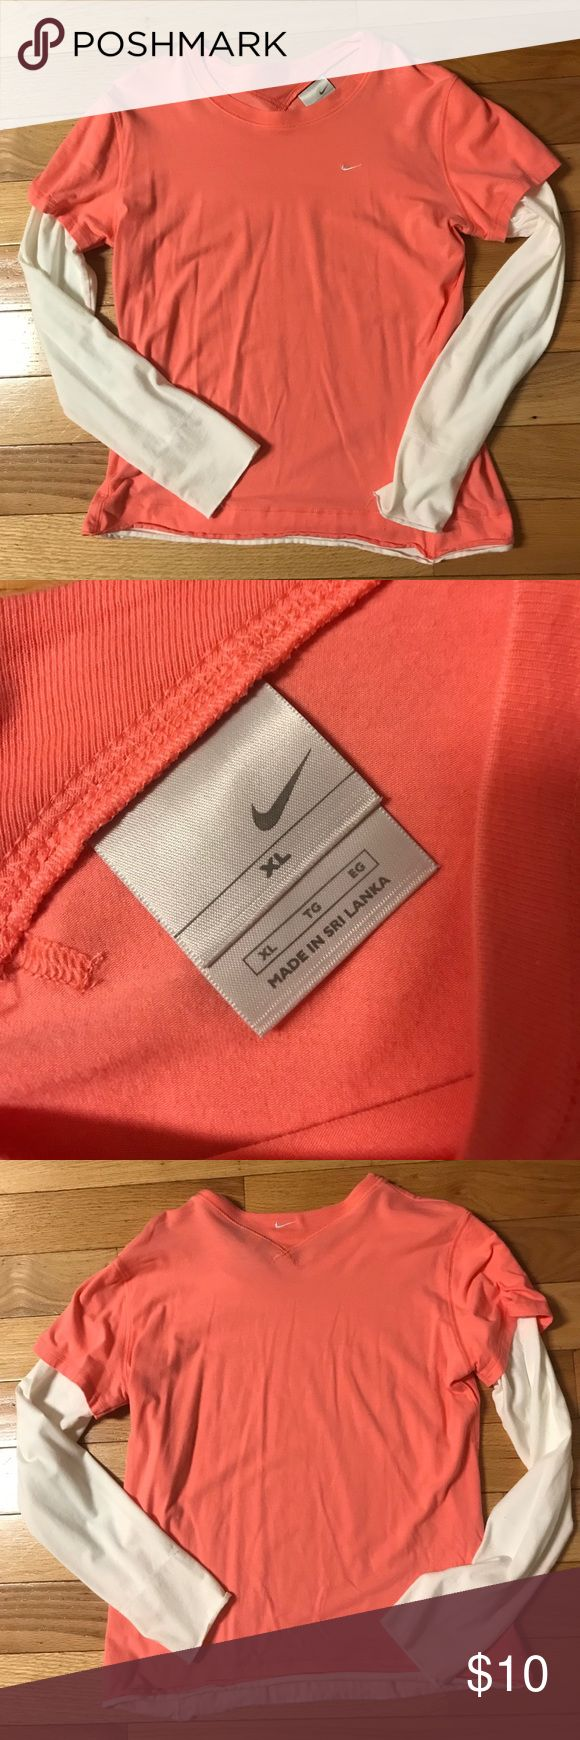 Nike layered look long sleeve T-shirt Ladies Coral and white one piece layered look Nike long sleeve tee...barely worn...great condition Tops Tees - Long Sleeve